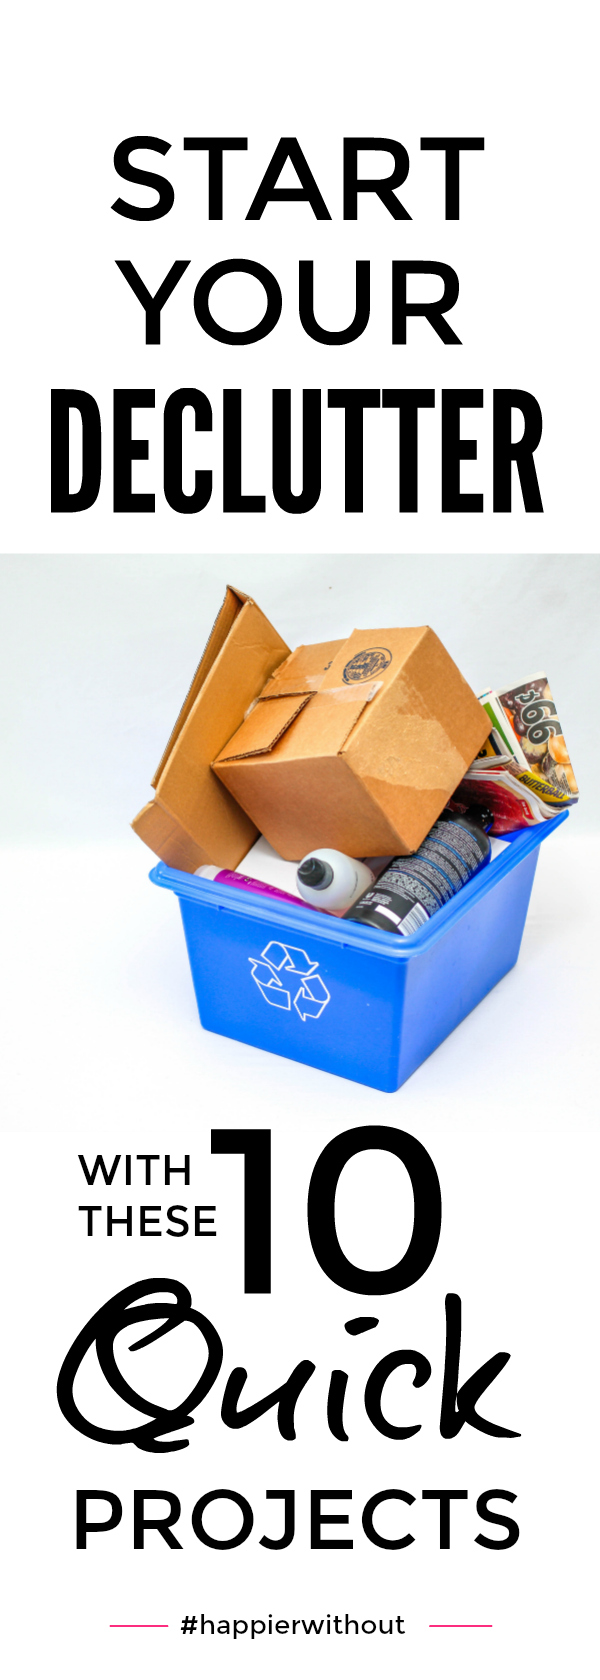 Start decluttering quickly with these 10 easy projects you can fit in however busy you are.  They really will help you keep clutter out for good ... #declutter #organize #happierwithout